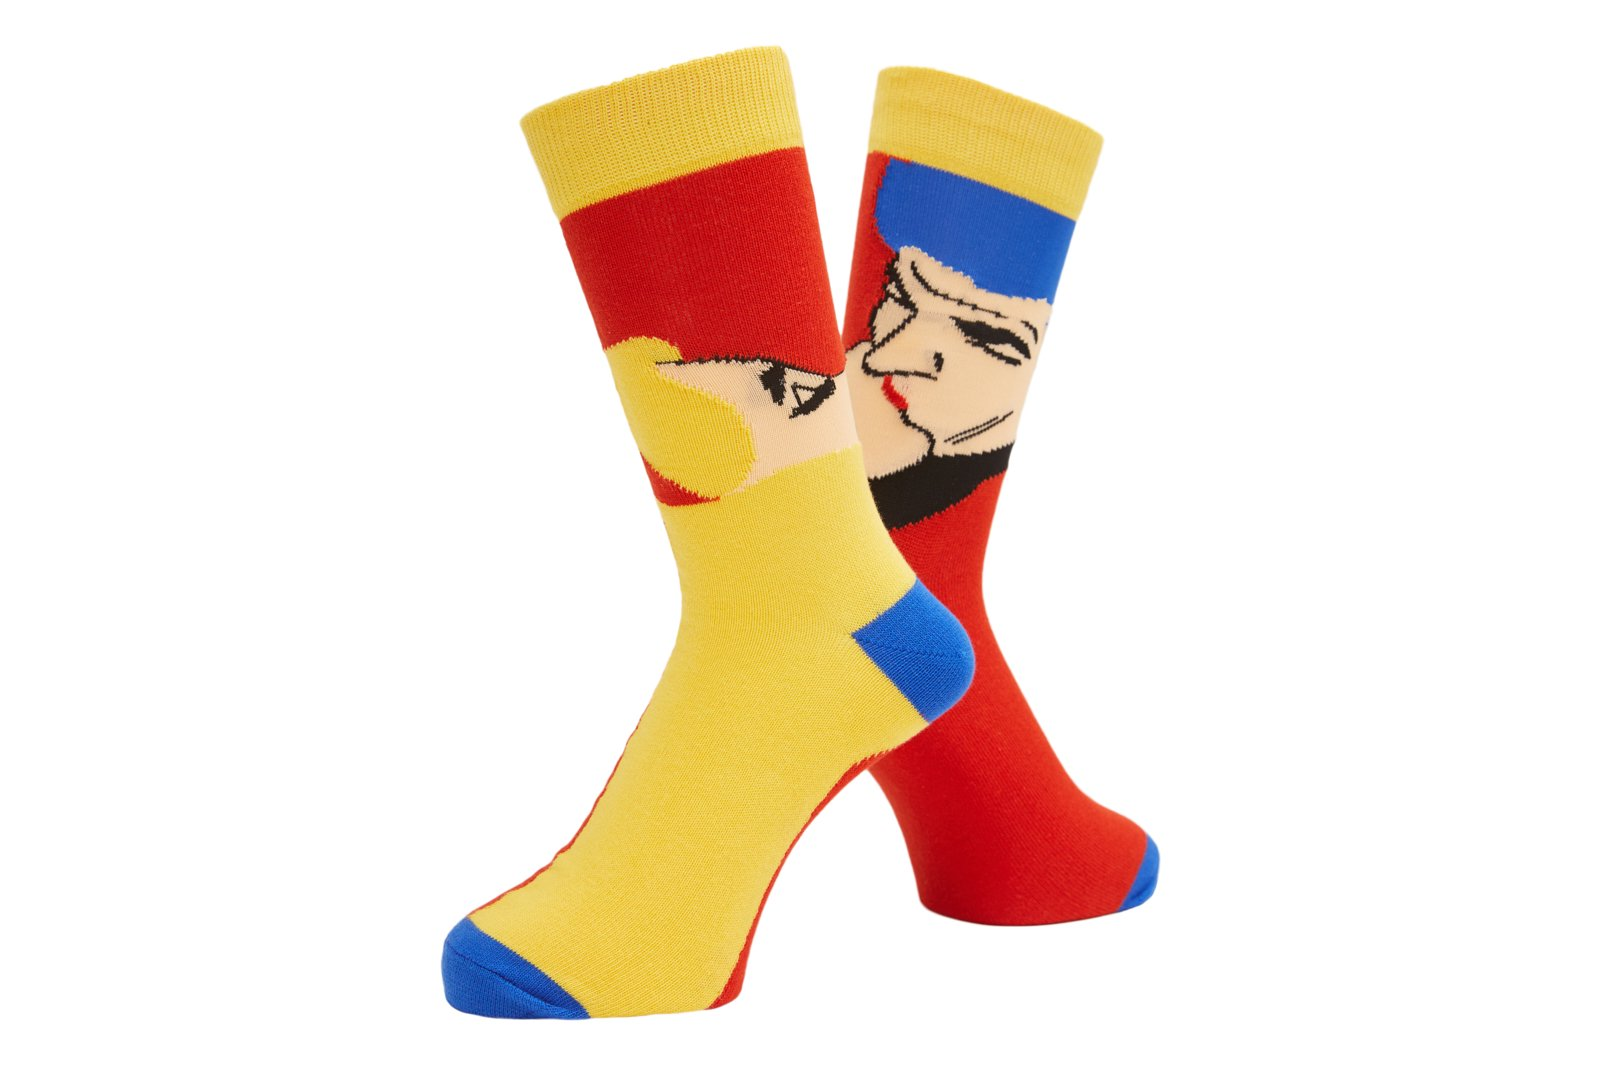 AFTERNOON DELIGHT SOCKS RED